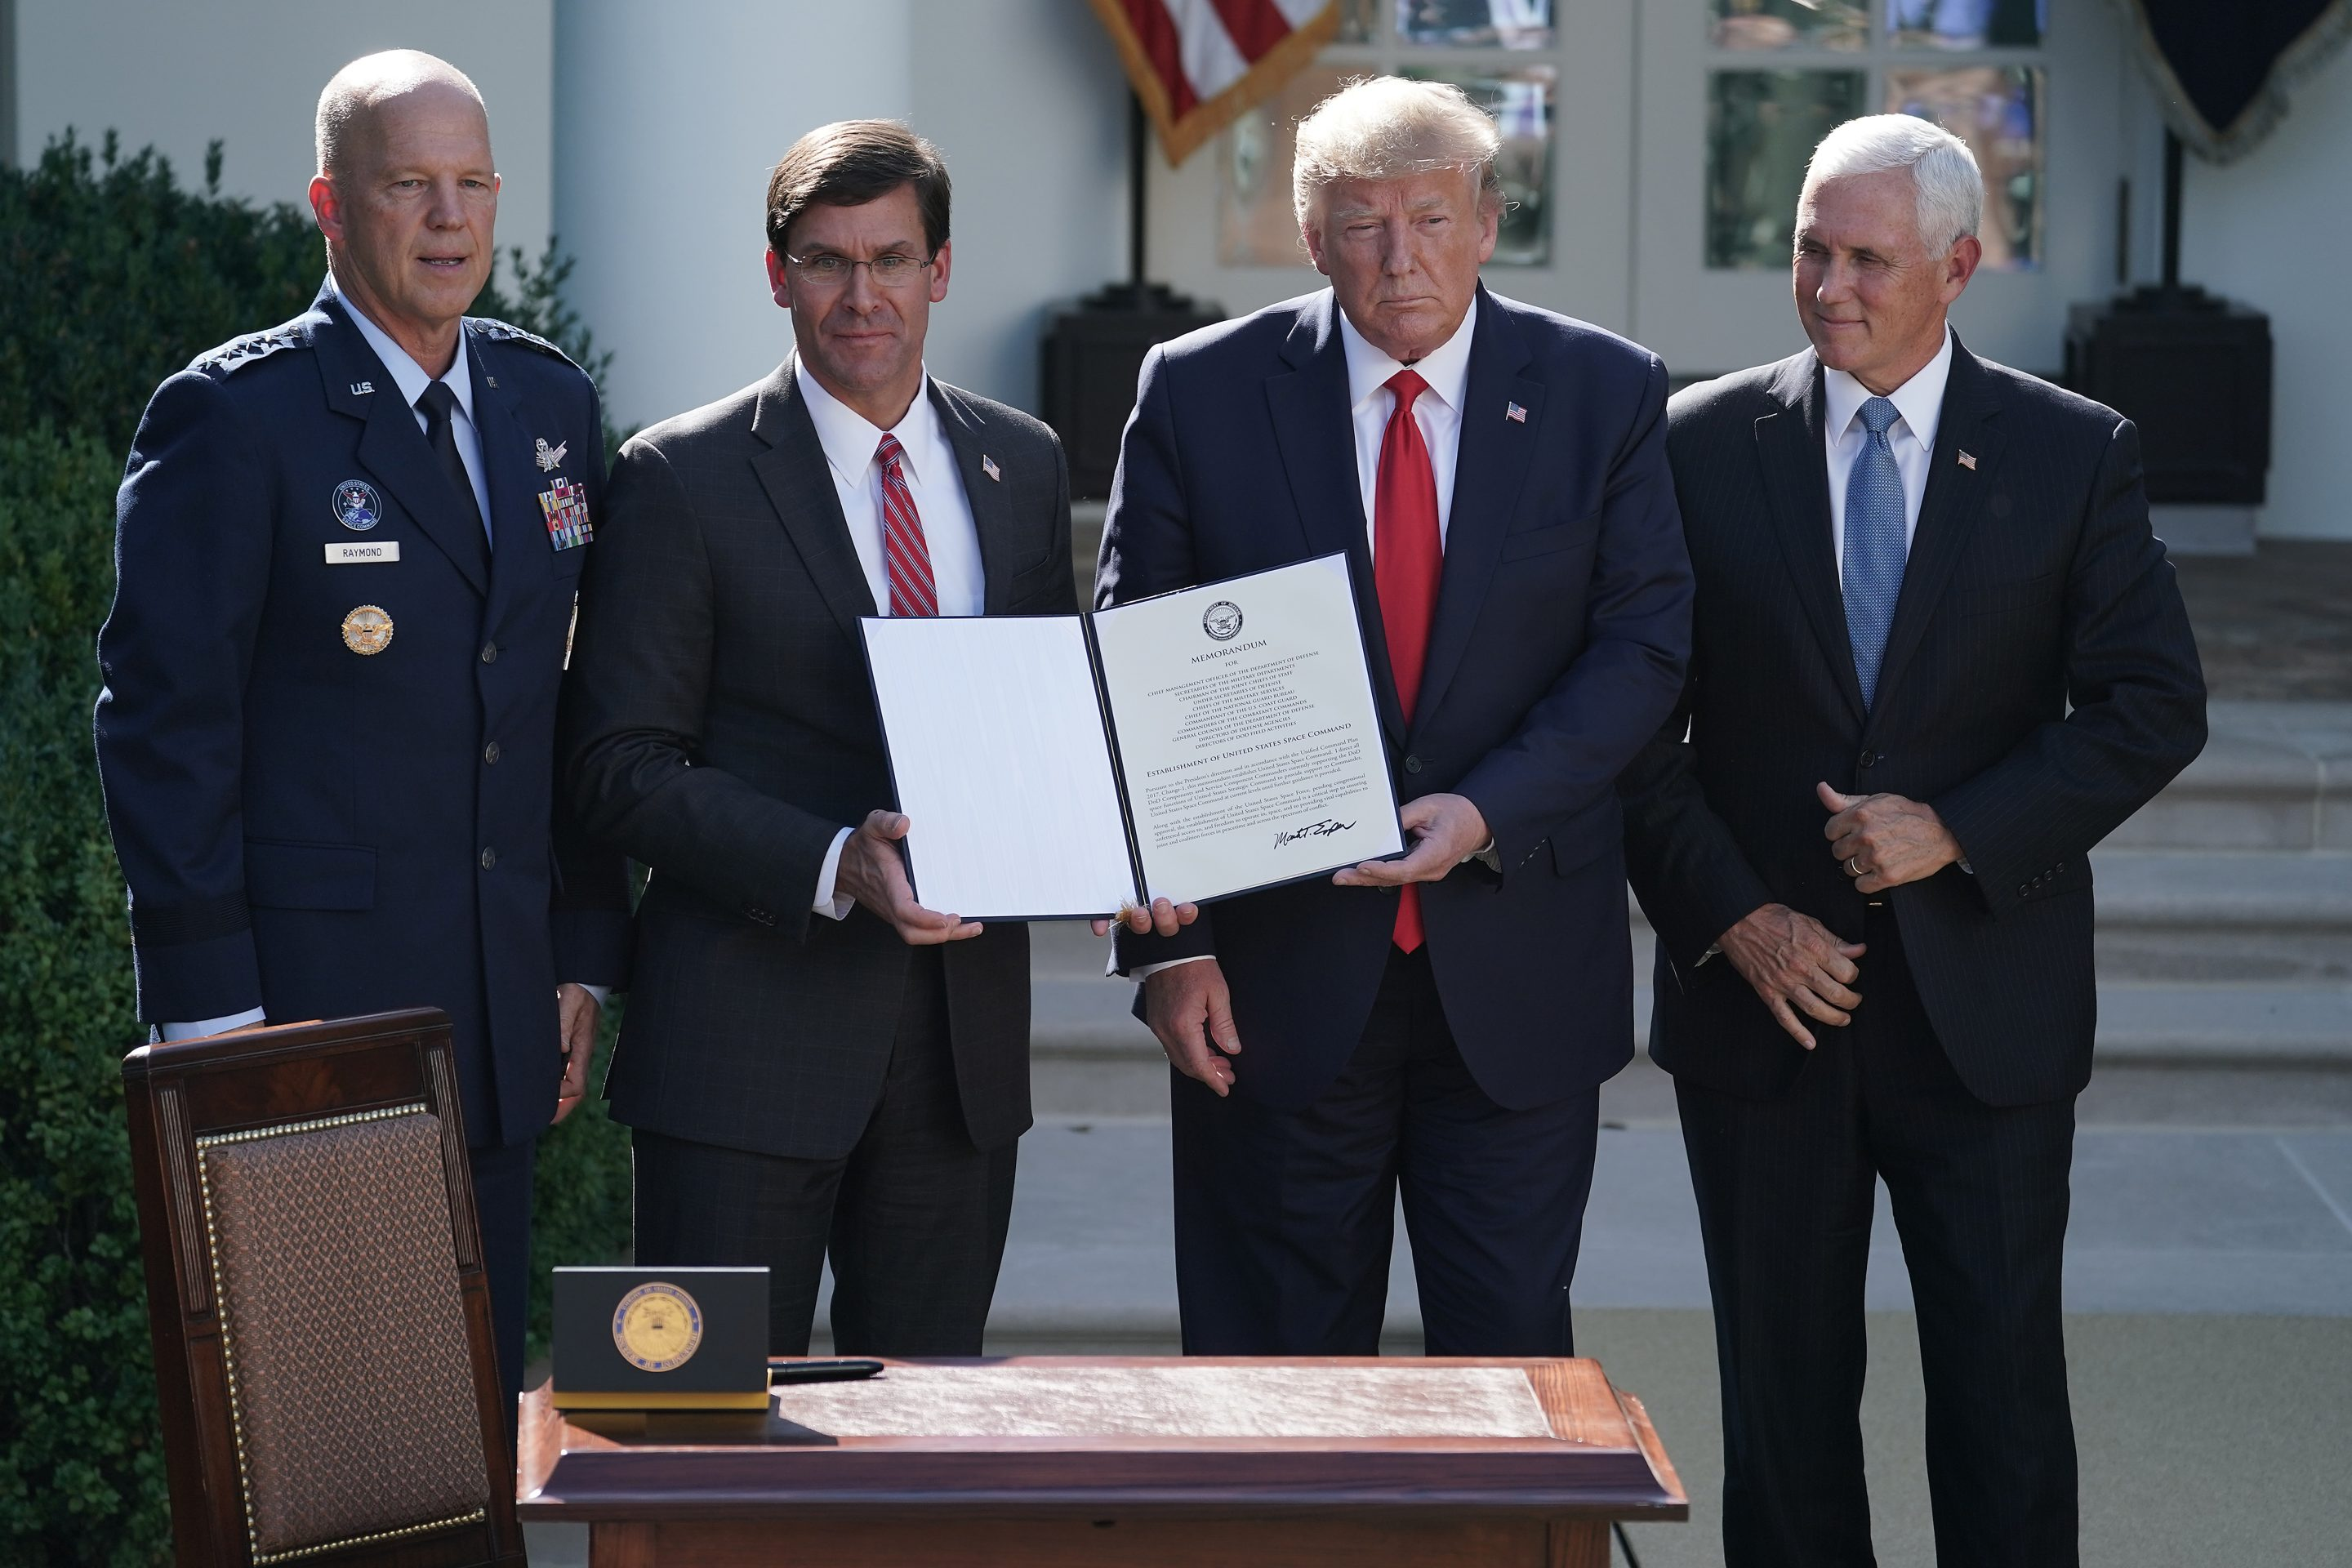 President Donald Trump Announces Establishment Of The U.S. Space Command